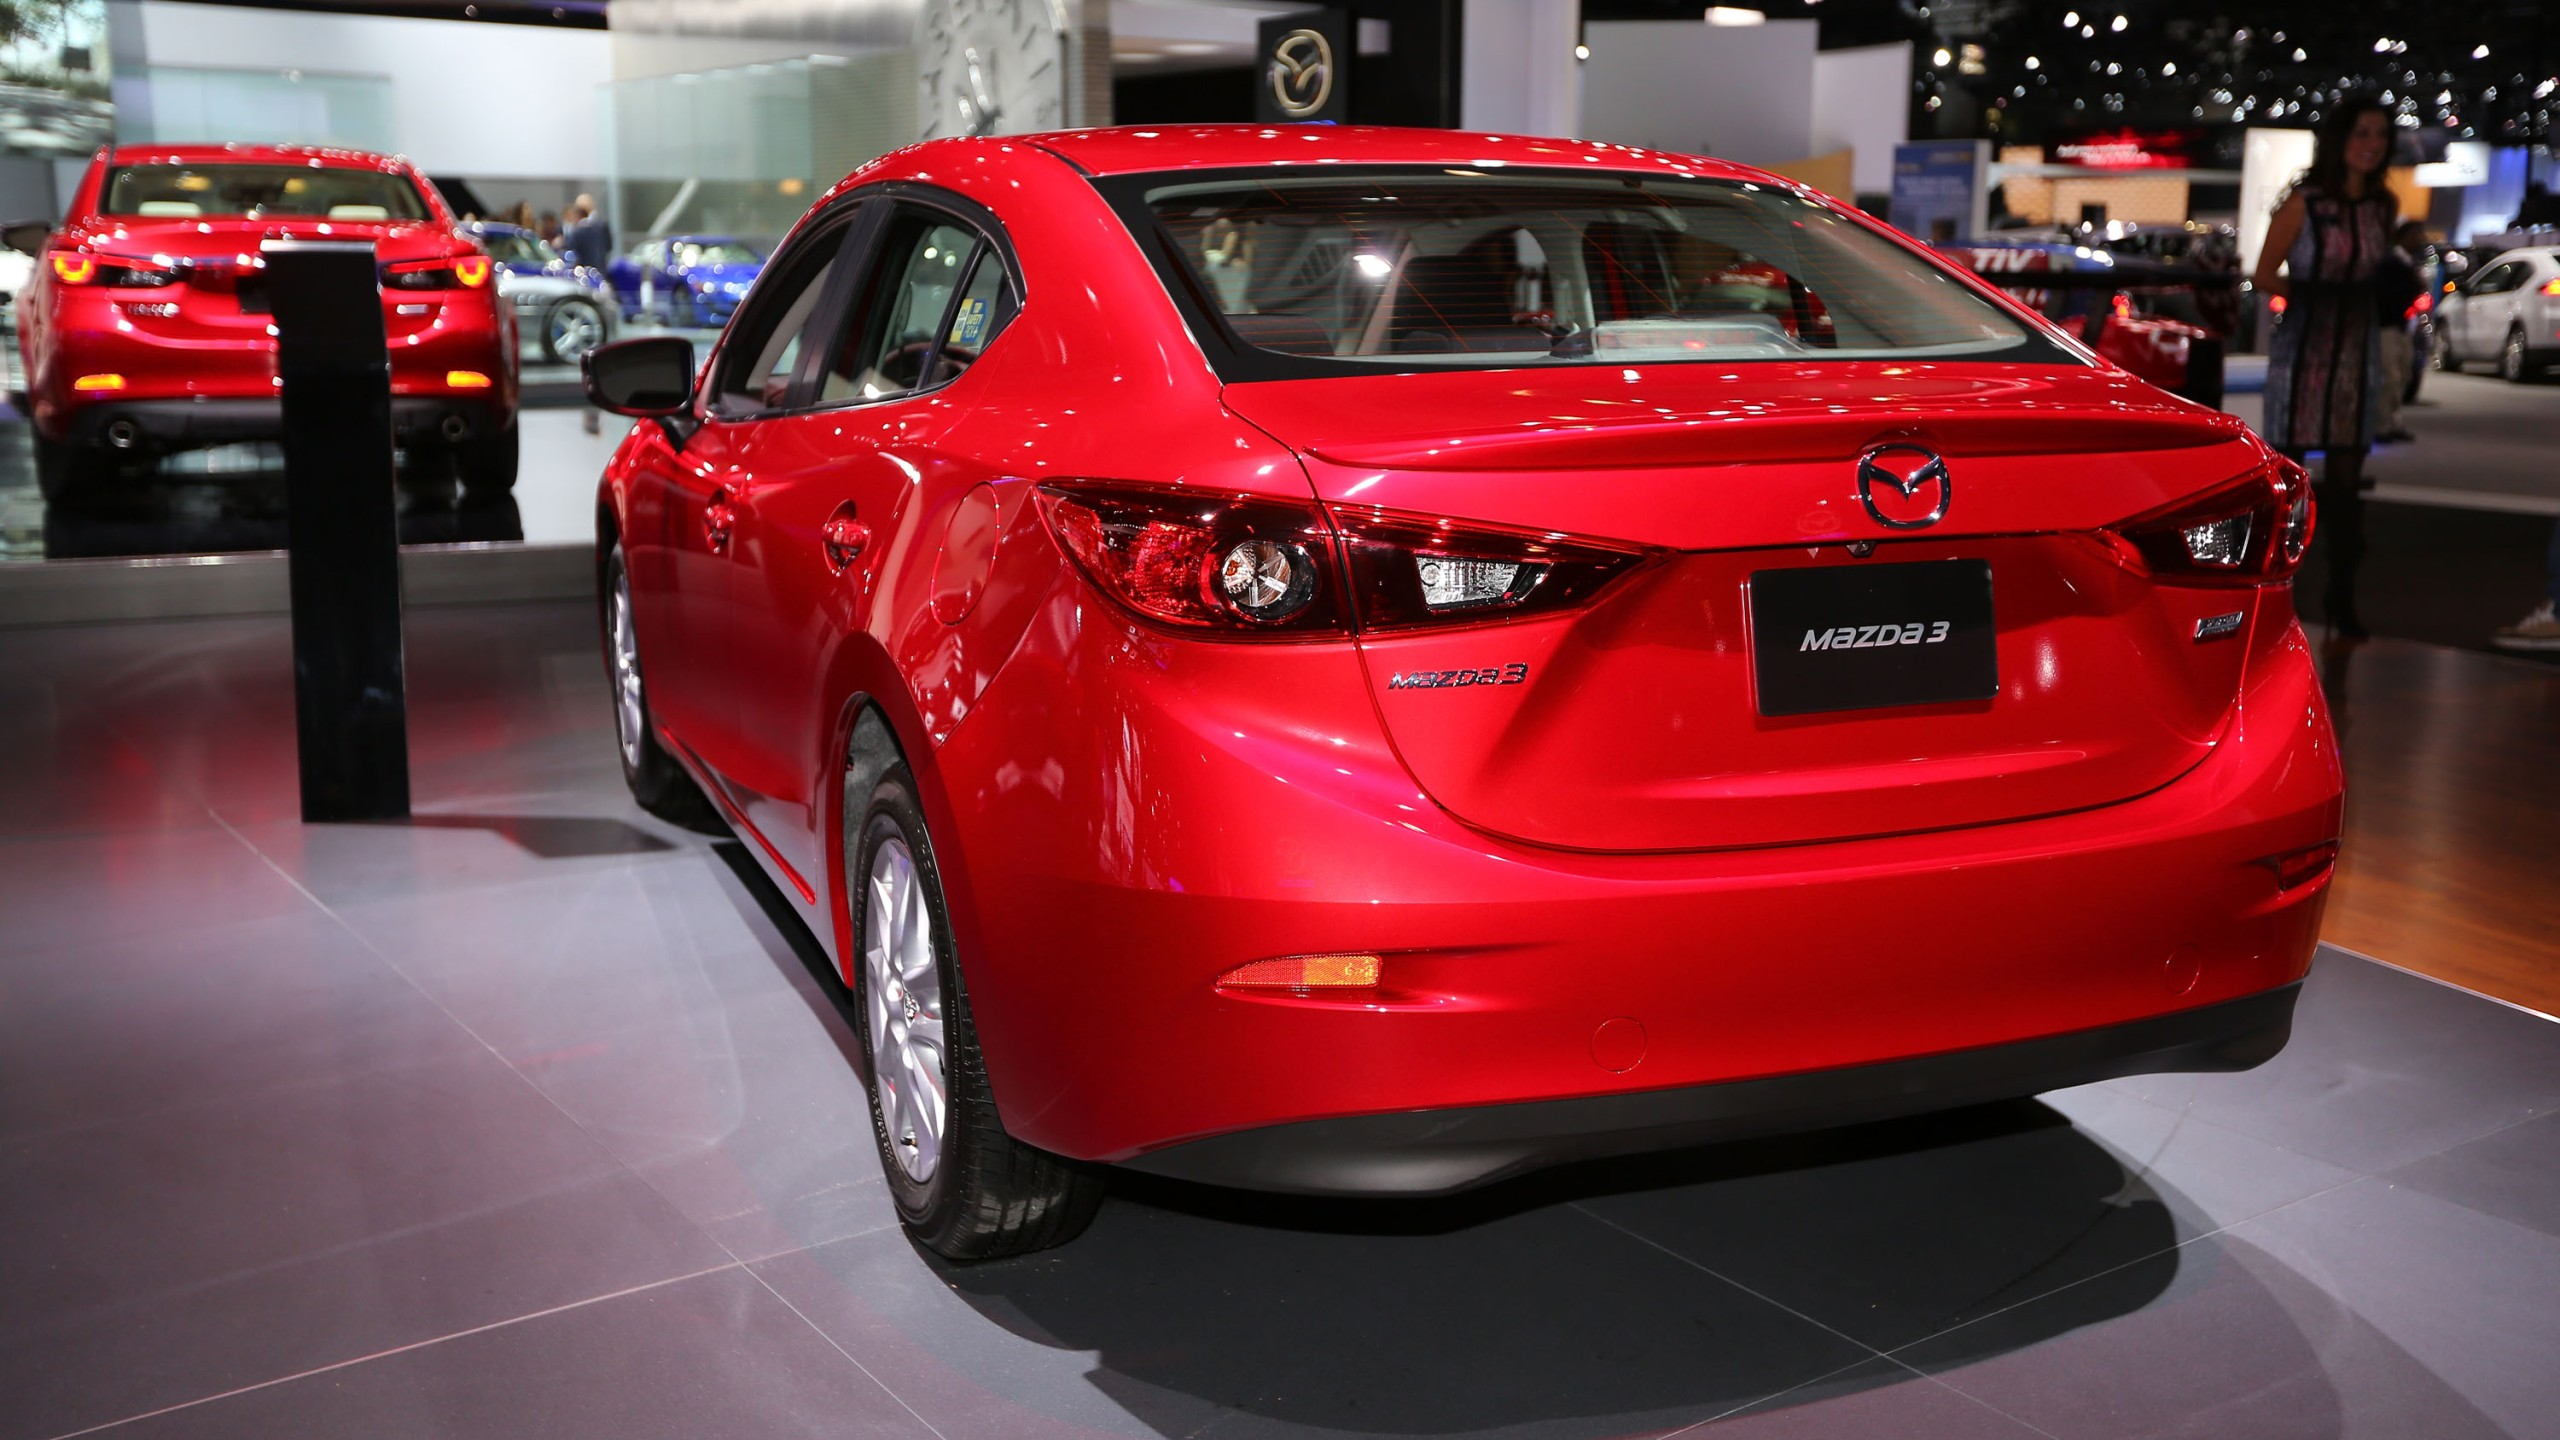 A Mazda 3 is displayed at the annual Los Angeles Auto Show on Nov. 19, 2014. (Credit: Victor Decolongon/Getty Images for Mazda Motor Co)